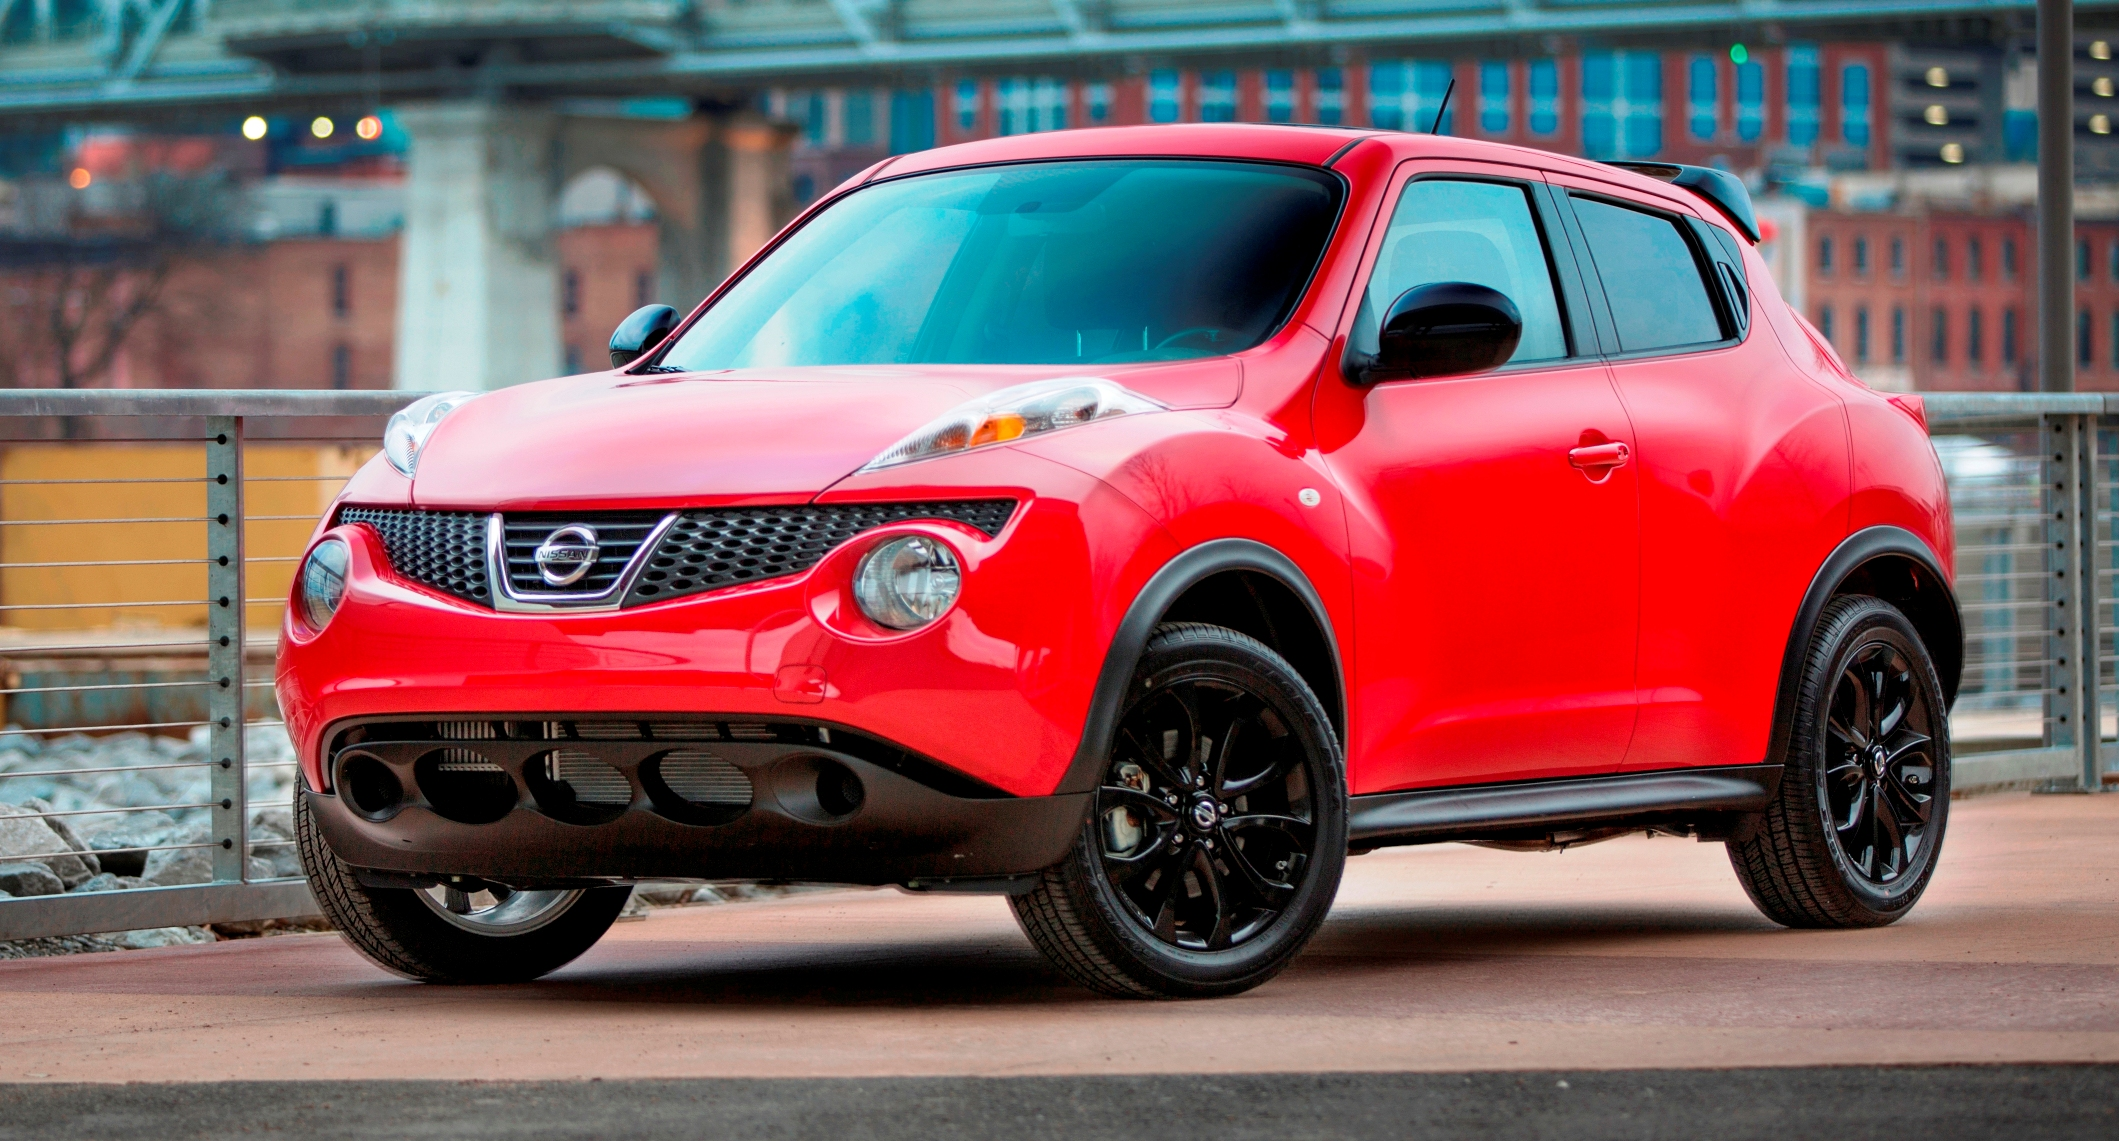 Floor Mats Car >> Nissan JUKE is Cool New Car from $20k